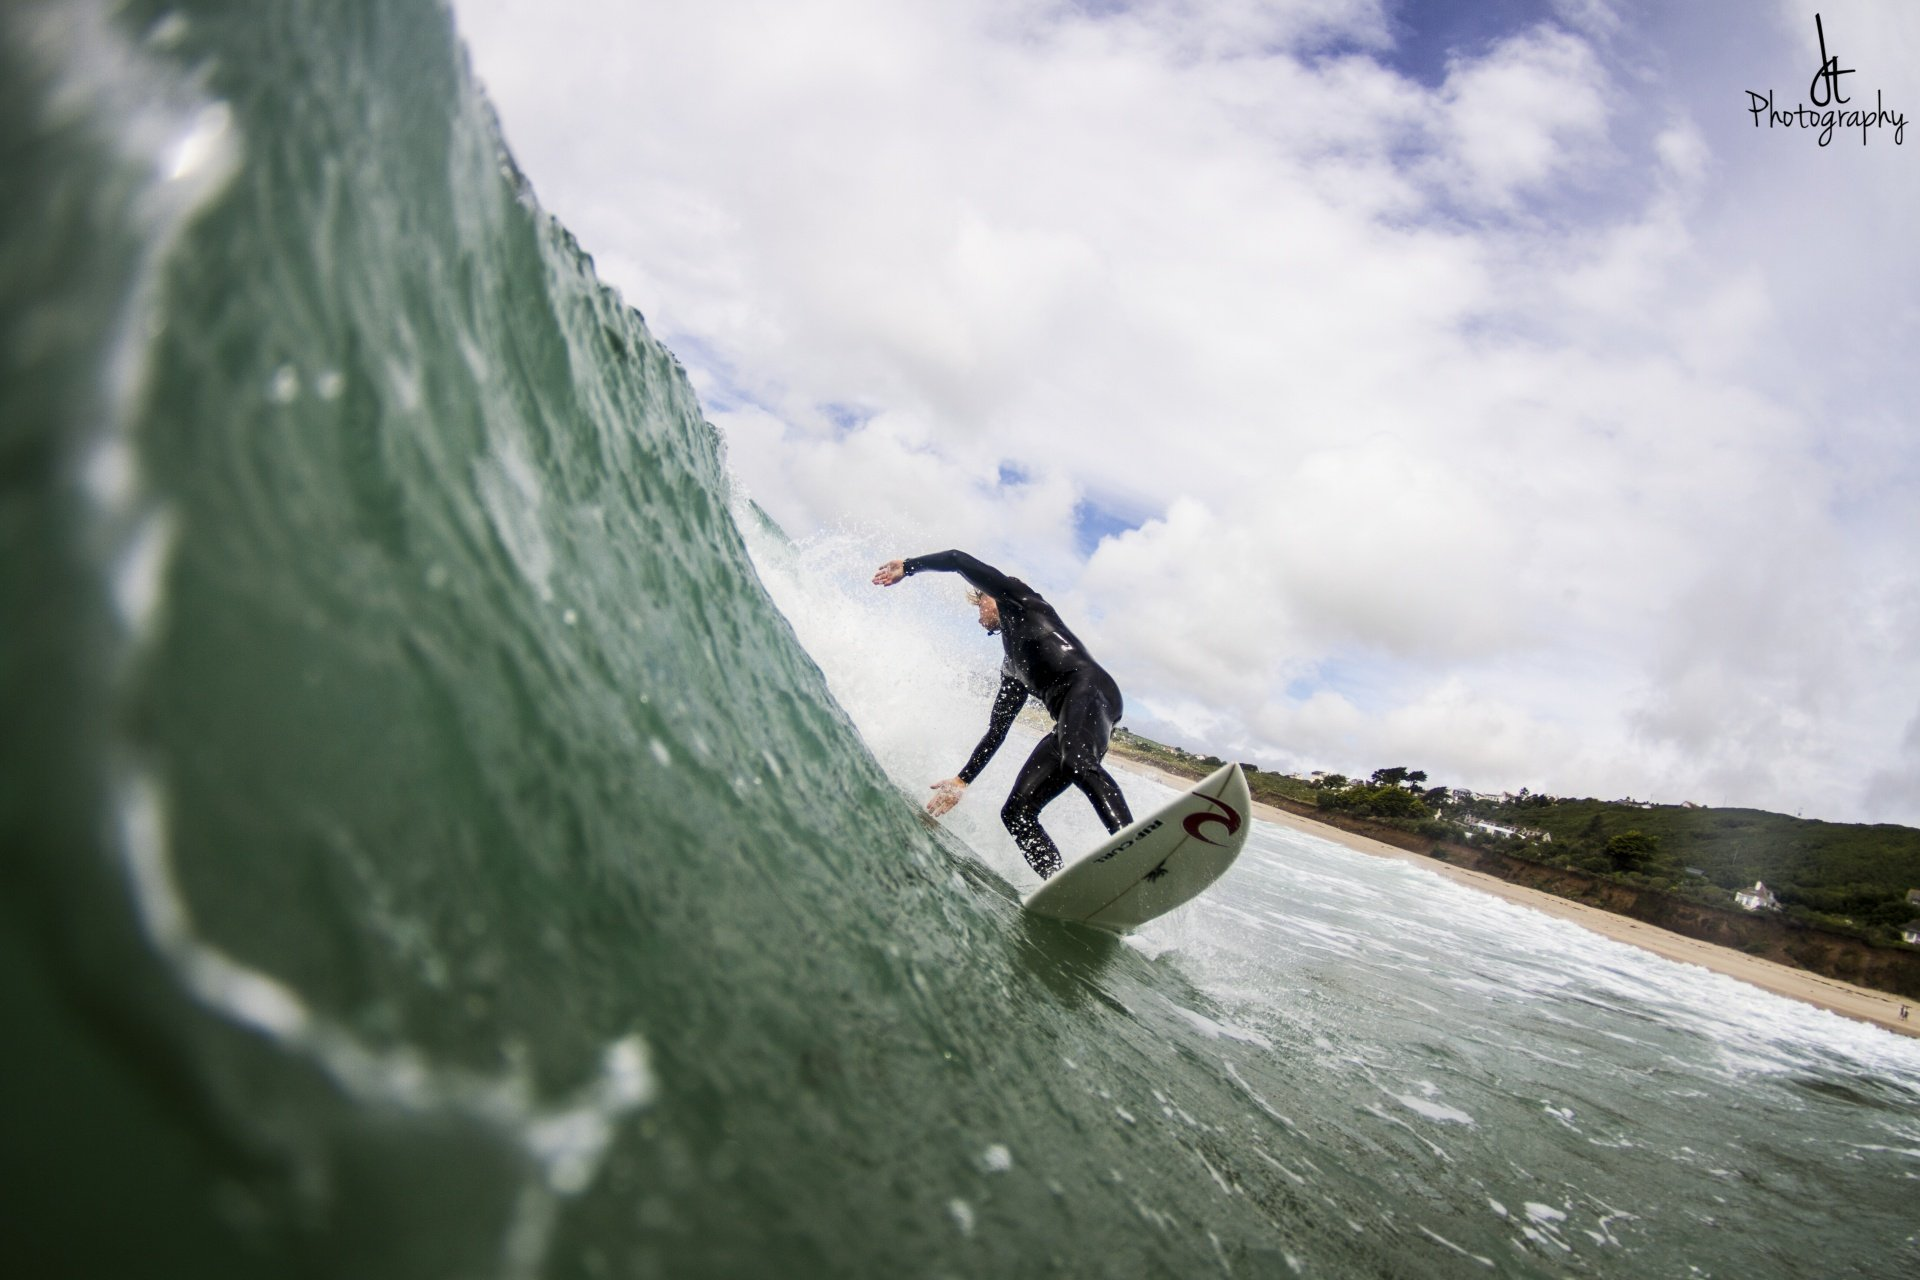 Joe Tinsley-Hewson's photo of Praa Sands